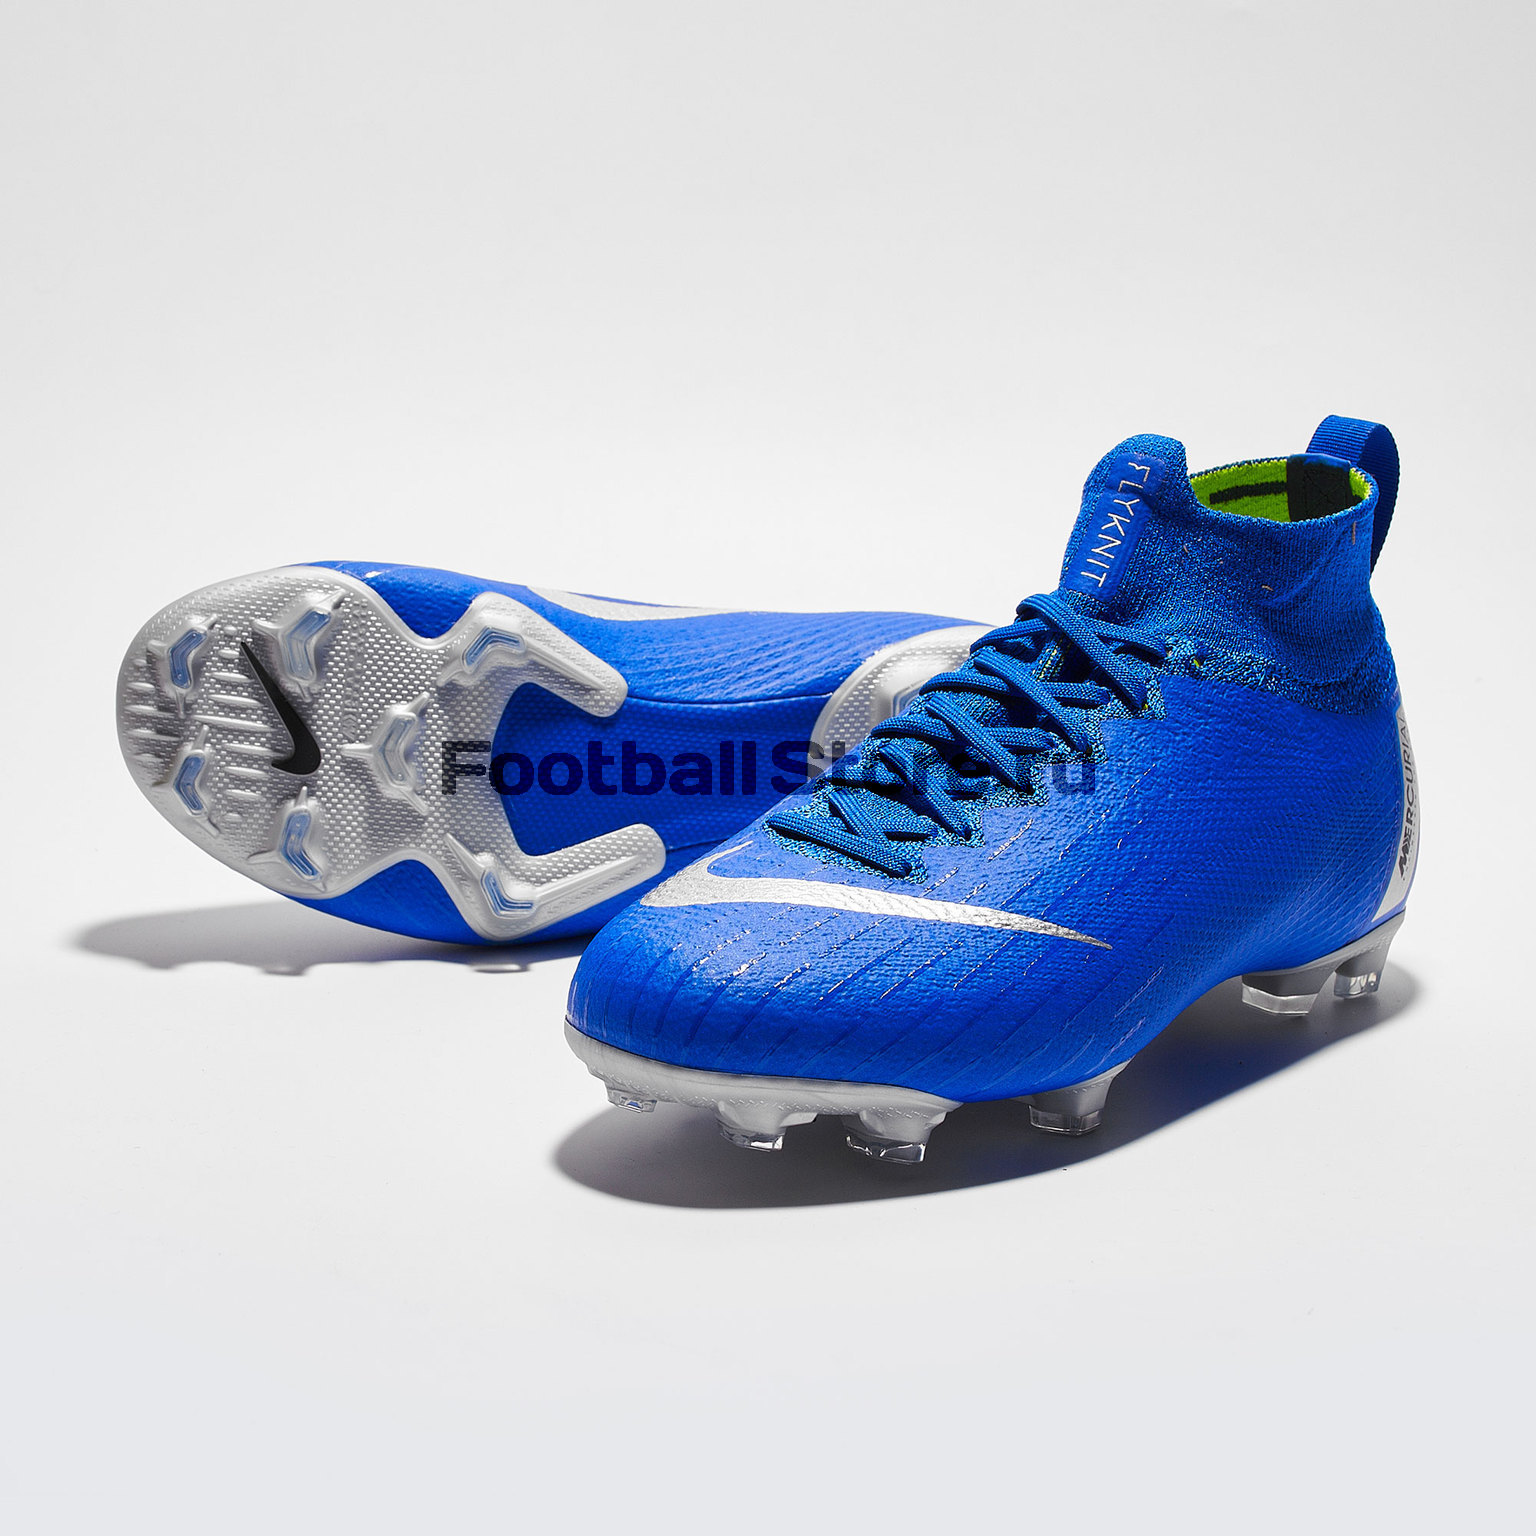 Бутсы детские Nike Superfly 6 Elite FG AH7340-400 бутсы nike superfly 6 elite cr7 fg aj3547 600